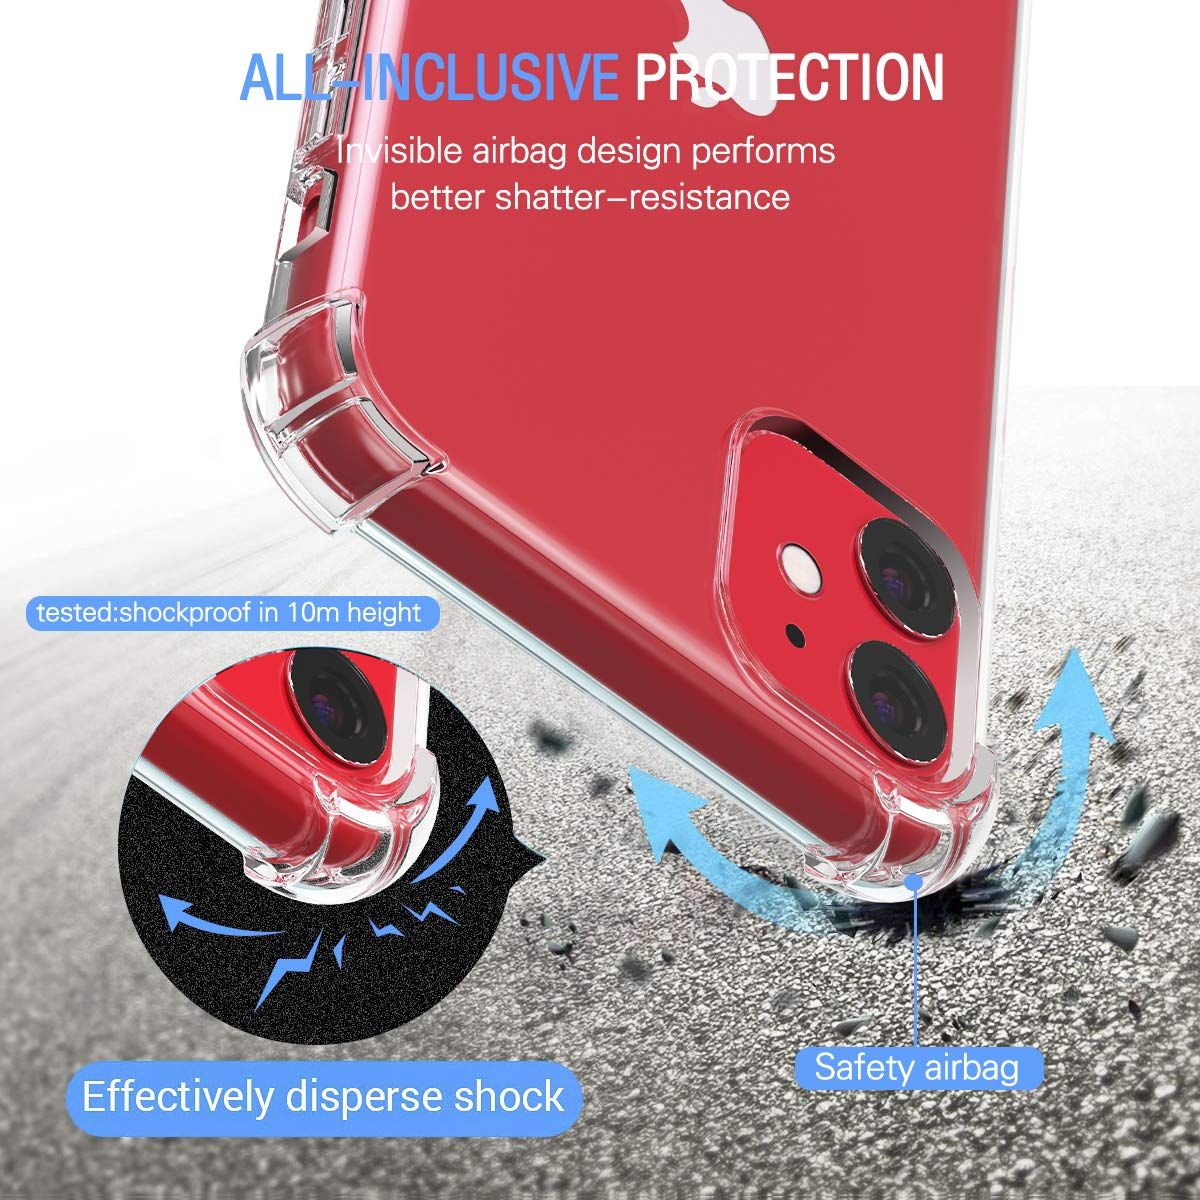 3 Pack Tempered Glass Screen Protector Clear Slim Soft TPU Anti-Scratch Shock Absorption Cover Case with Reinforced Corner Bumpers for iPhone 11 6.1 inch 2019 ivoler Case for iPhone 11